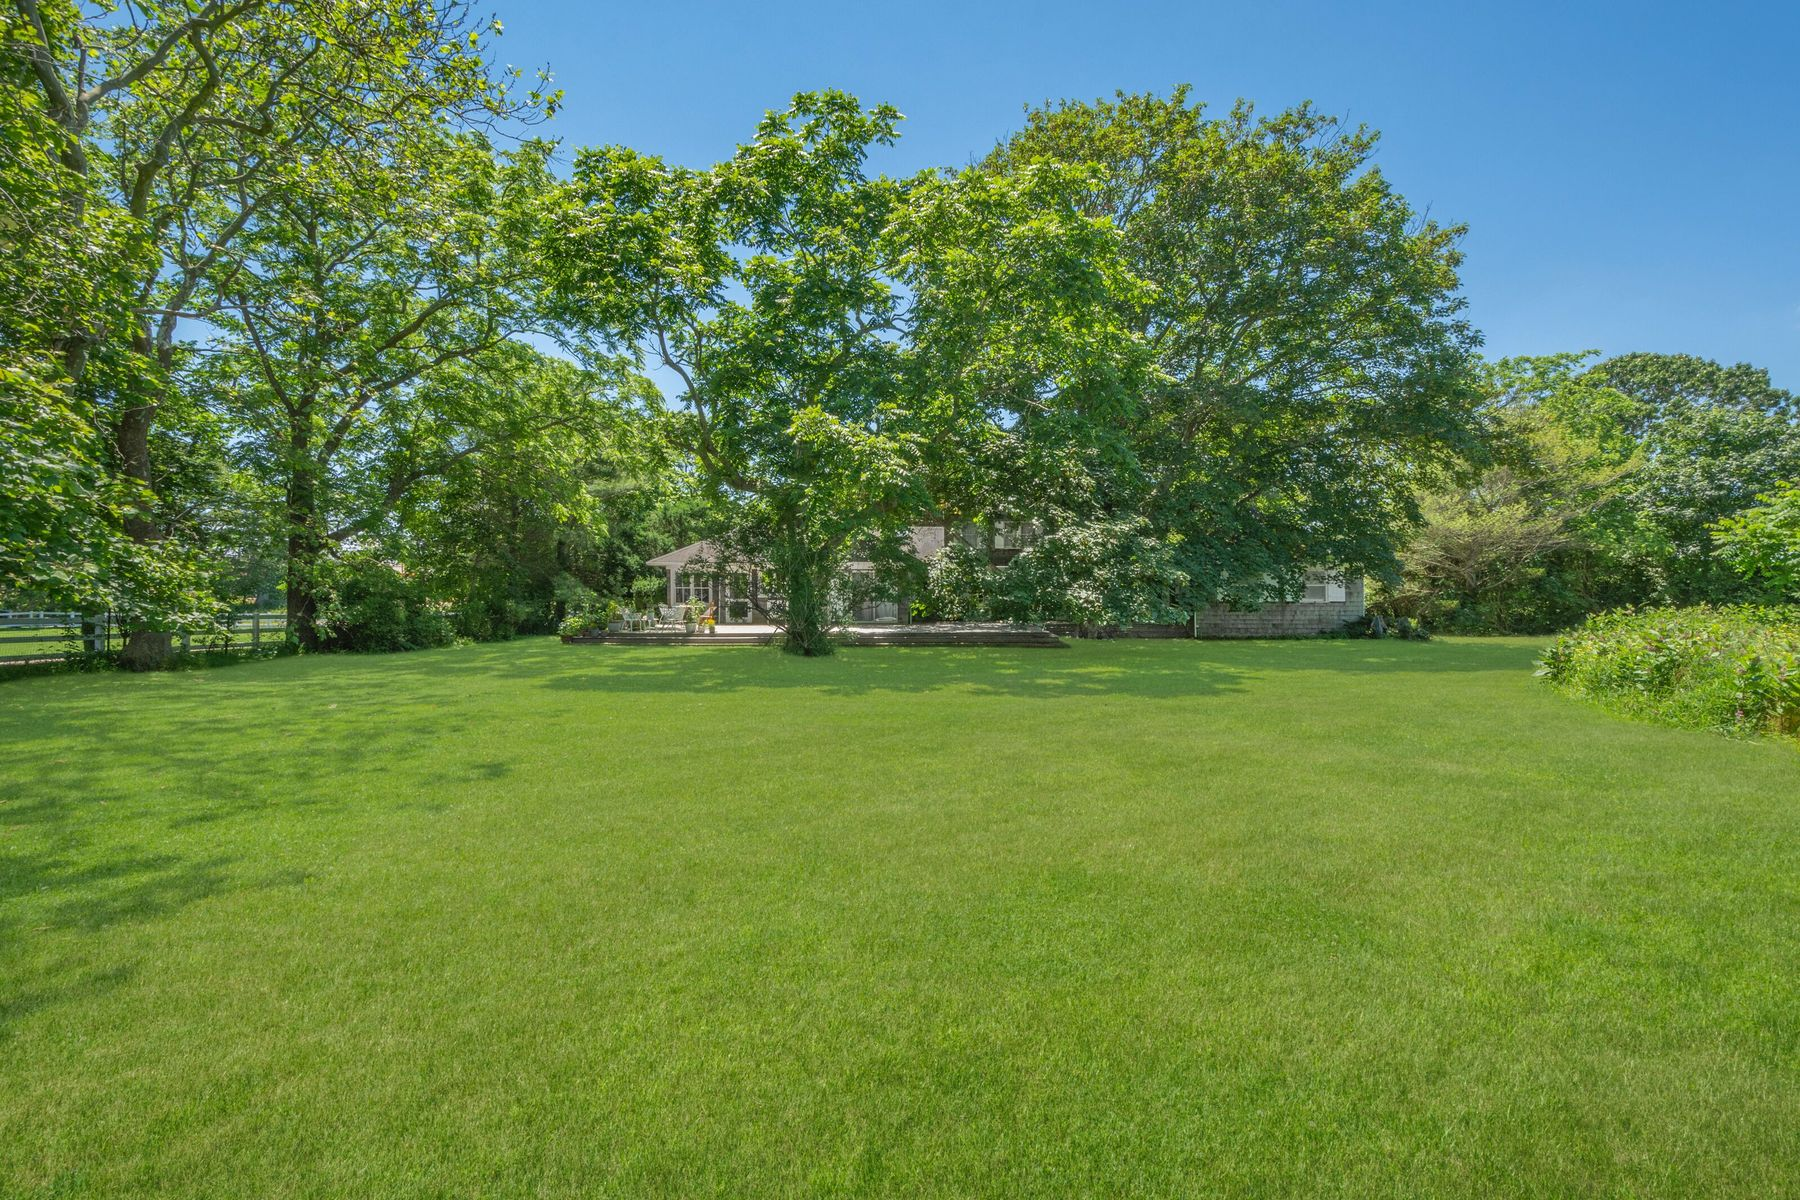 Single Family Homes for Sale at SOUTH OF HIGHWAY OVERLOOKING FARM 11 Town Line Road Wainscott, New York 11975 United States